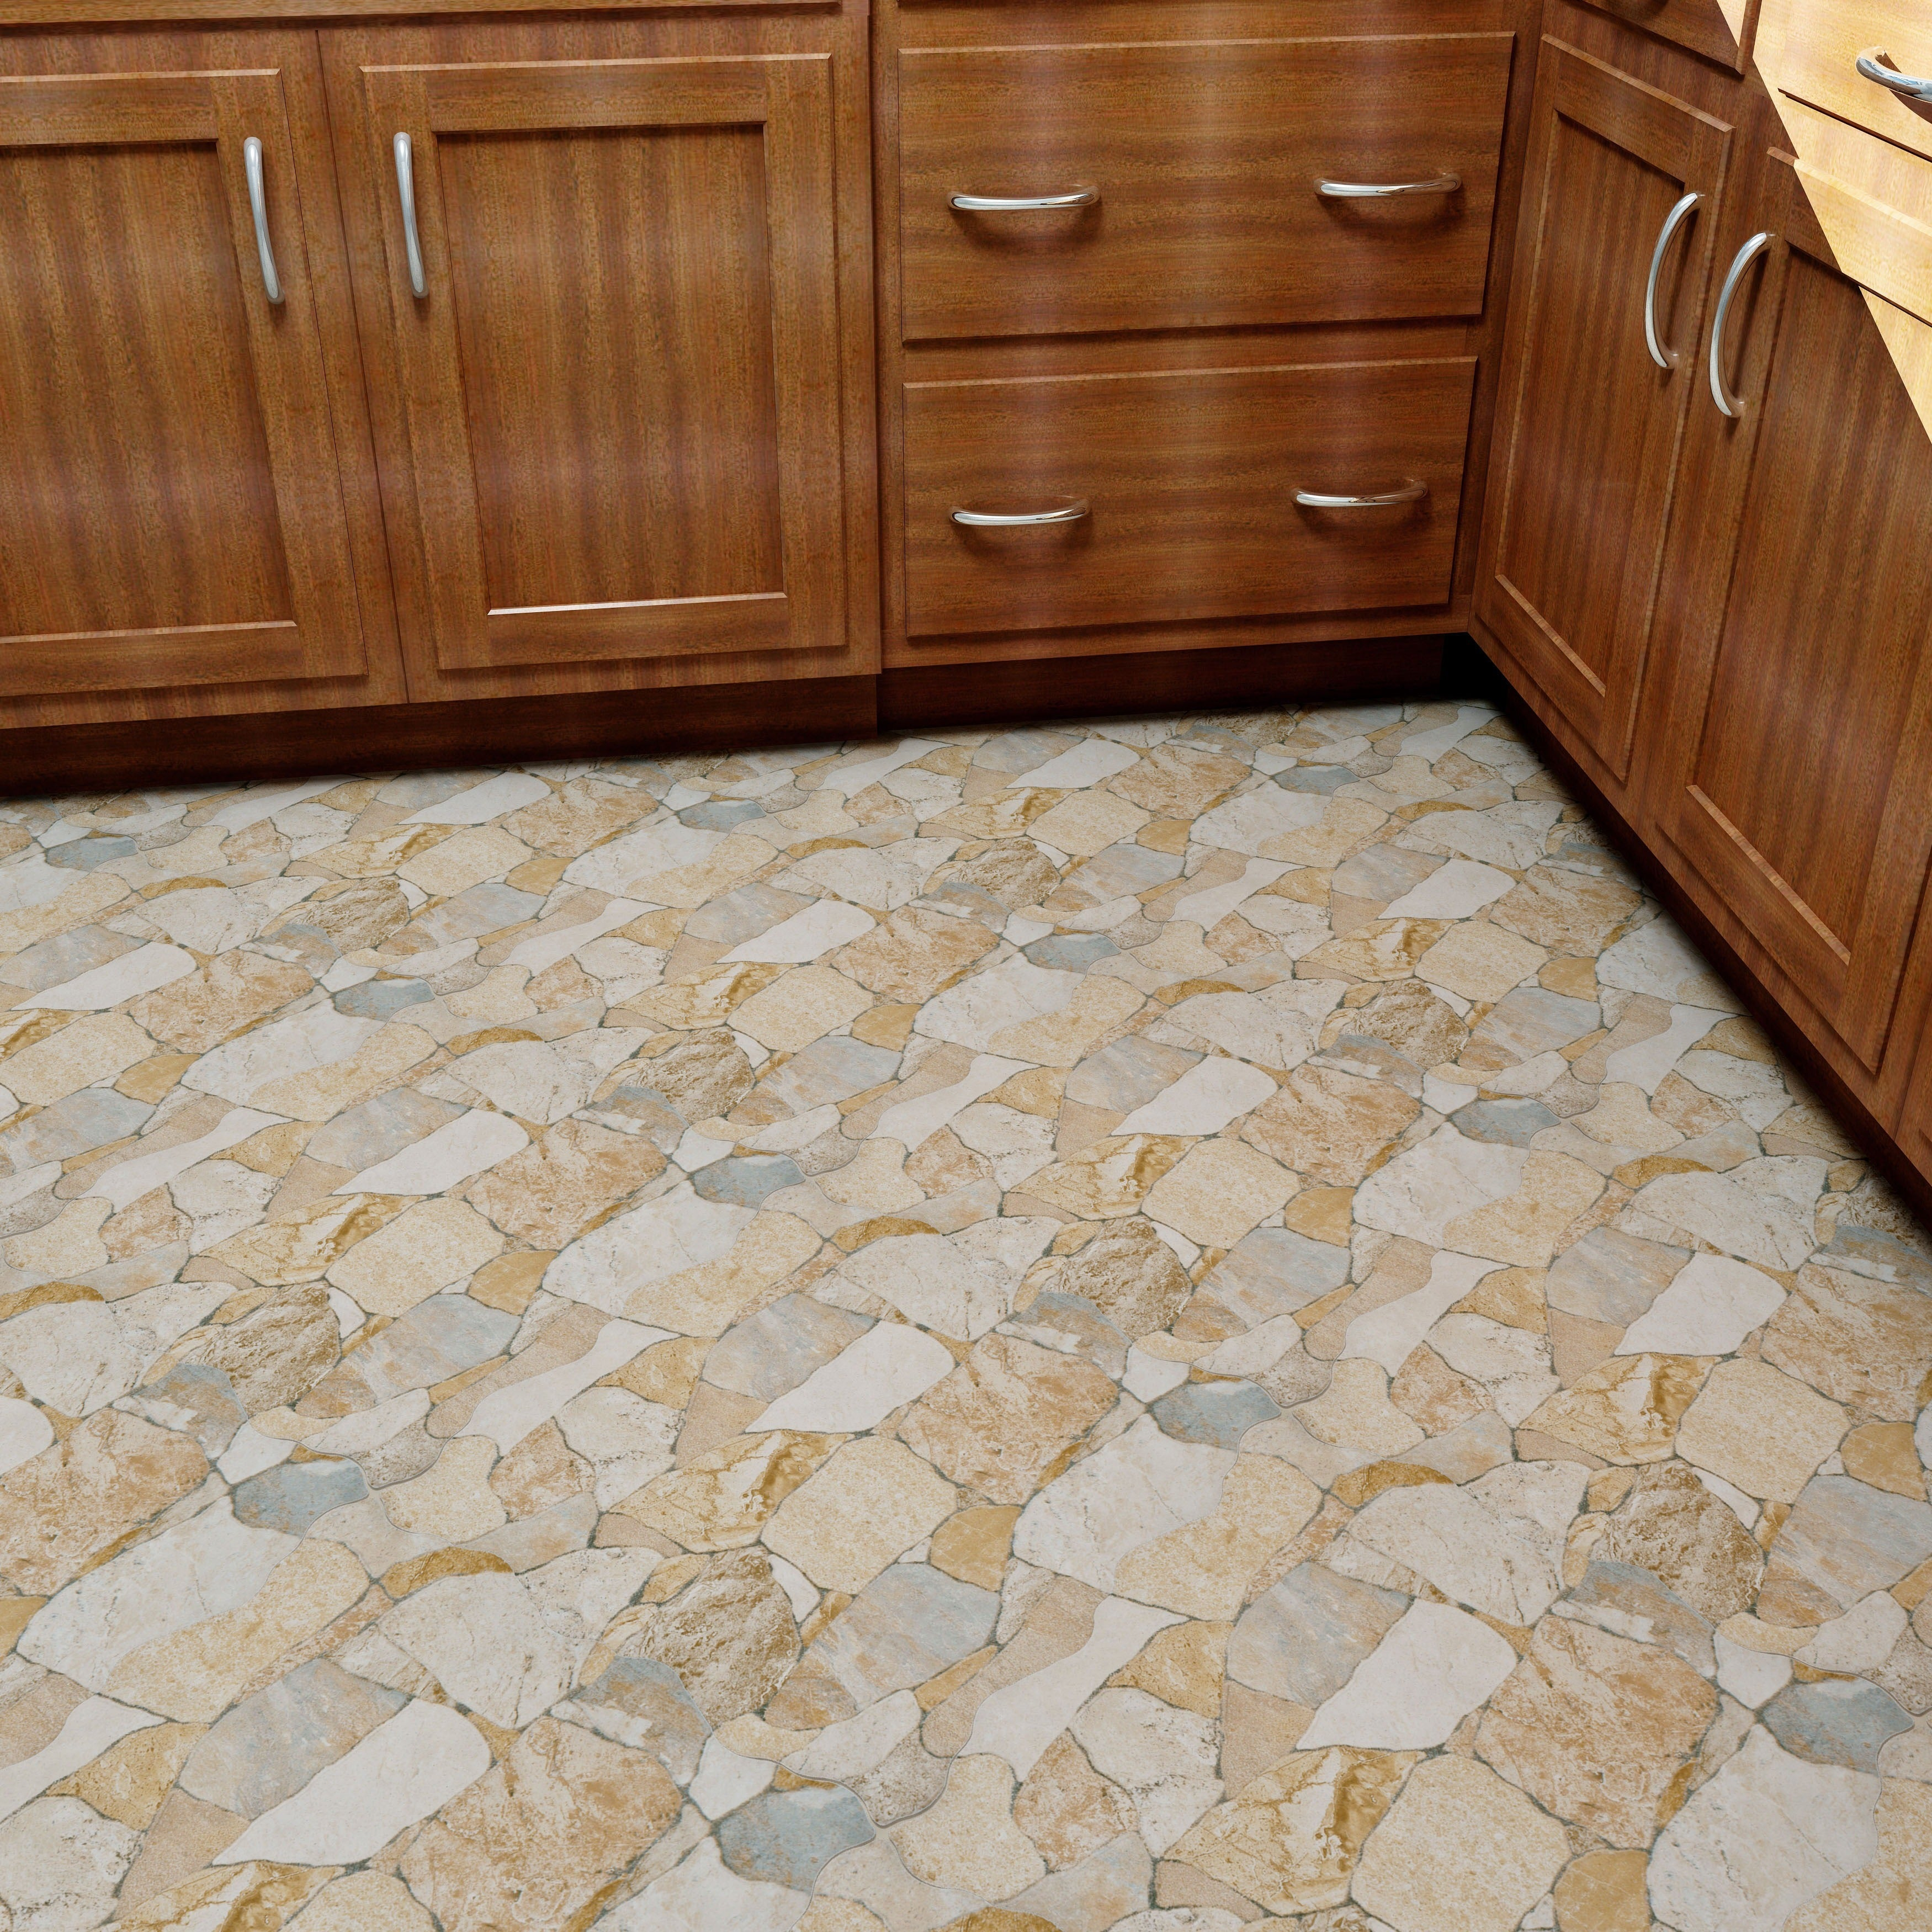 Somertile 1775x1775 inch atticus beige stone look ceramic floor somertile 1775x1775 inch atticus beige stone look ceramic floor and wall tile case of 7 free shipping today overstock 15438738 dailygadgetfo Image collections